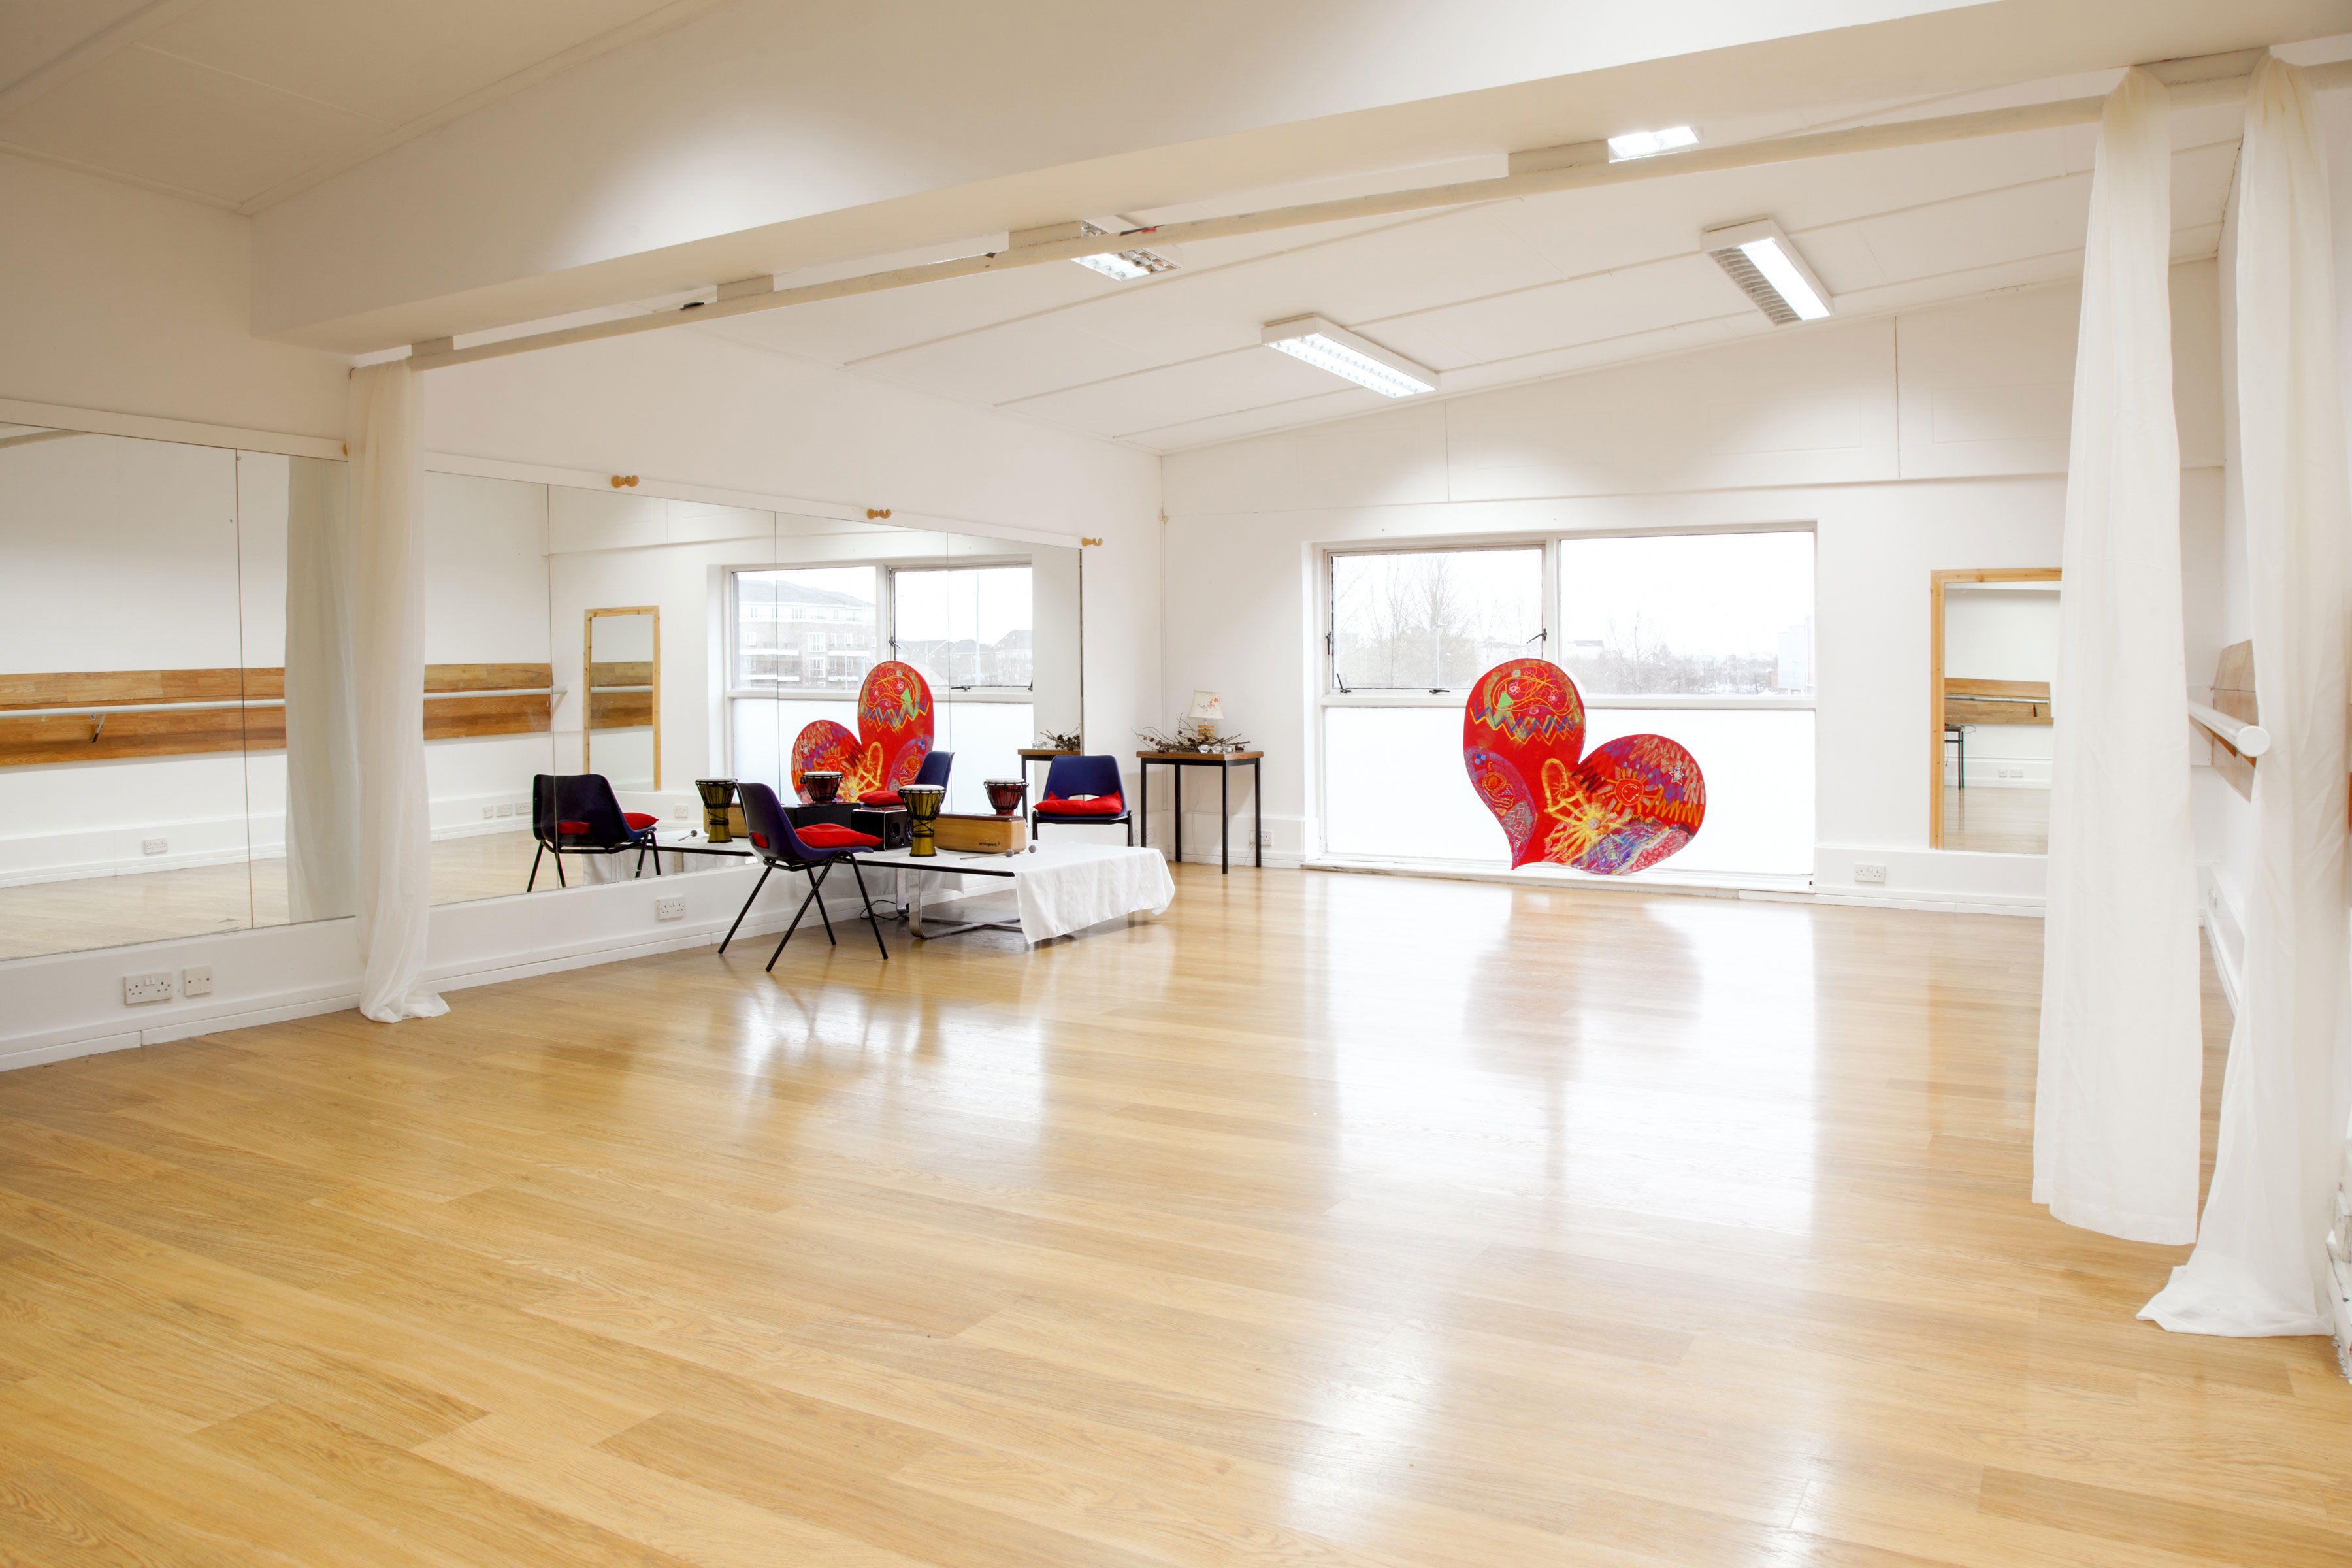 Studio In The Terryland District Of Galway City Workshops And Group Sessions Can Be Set Up At Suitable Venues Consultation With Interested Parties